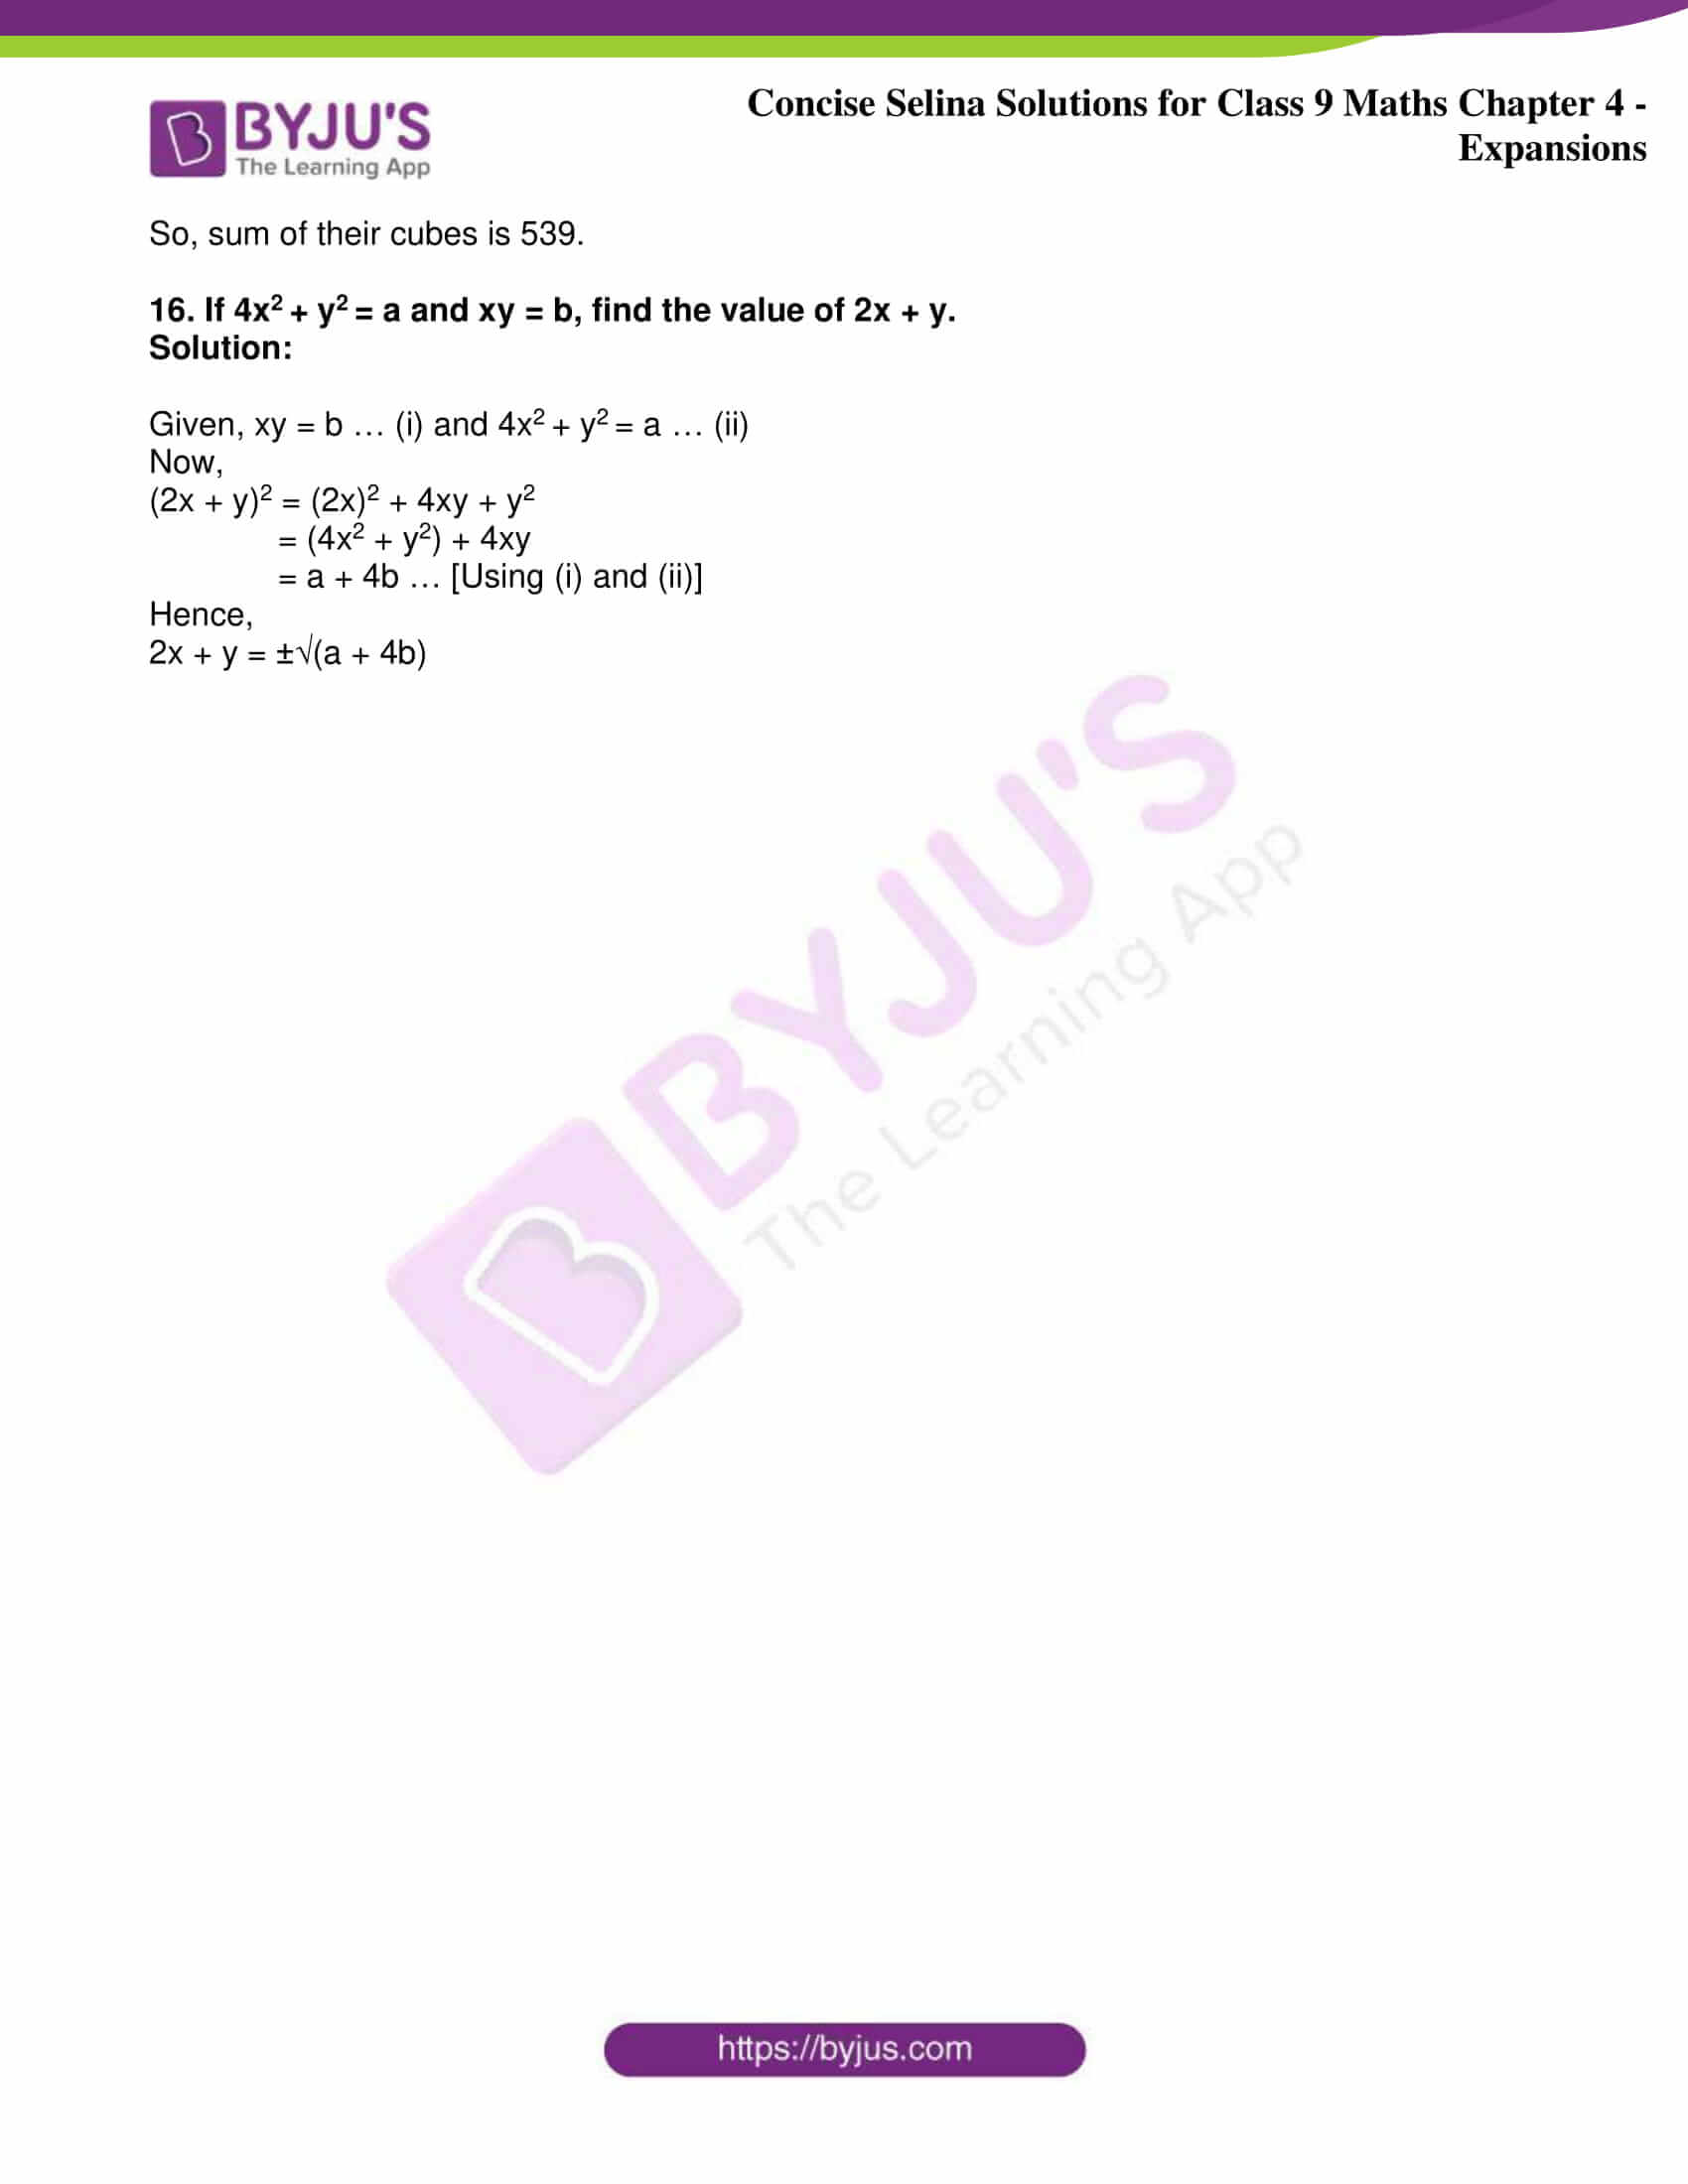 icse class 9 maths may10 selina solutions chapter 4 expansions 17